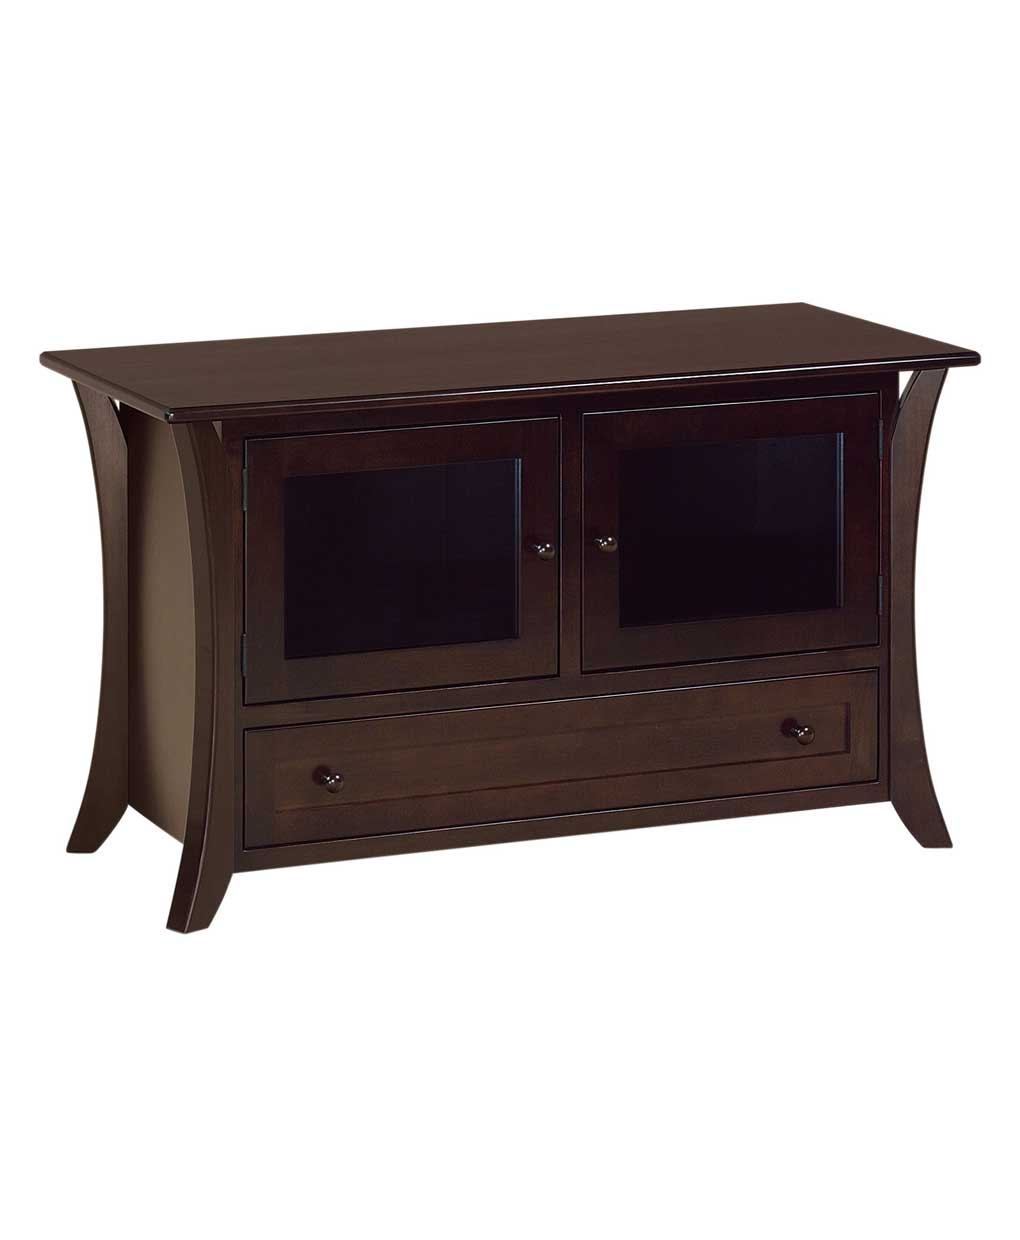 Tall caledonia tv stand amish direct furniture for Tall tv stands for living room